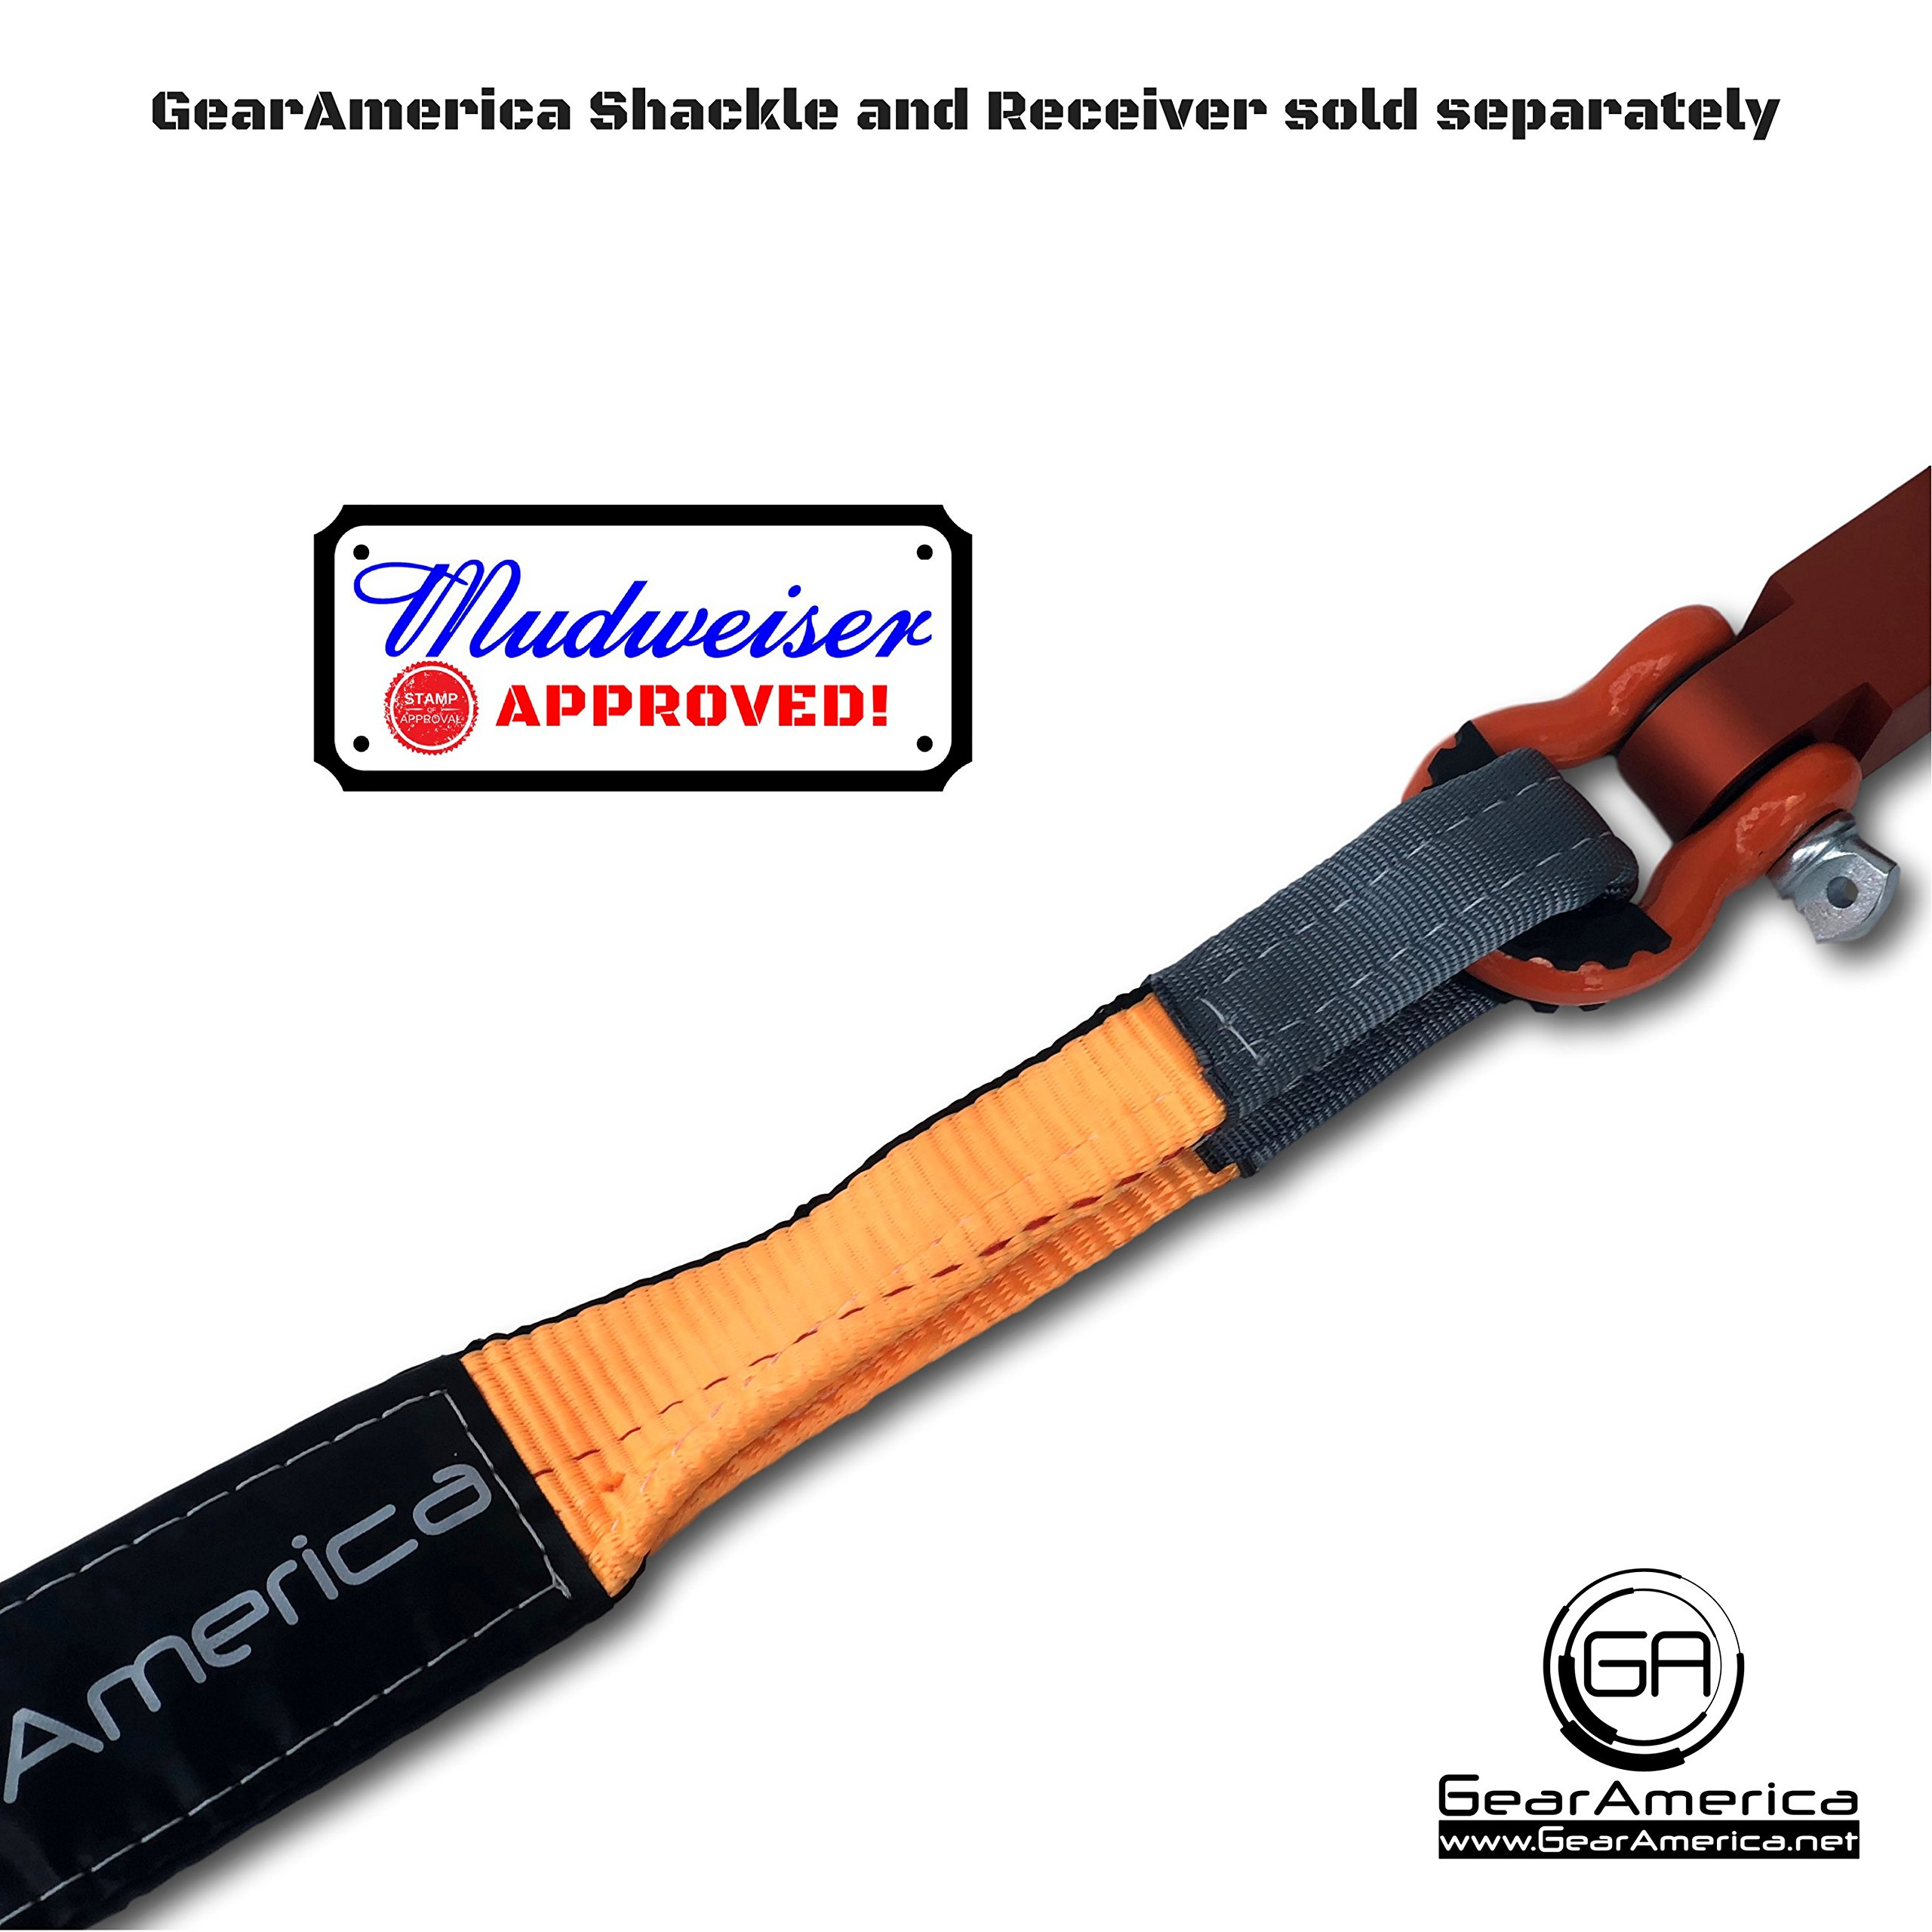 Heavy-Duty Tree Saver Winch Strap | Off-Road Towing and Recovery Rope for Truck, Jeep and SUV | Attach Hook or D-Ring Shackle to Pull Stuck Vehicle | Lab-Tested 35,000 lbs | BONUS Storage Bag by GearAmerica (Image #9)